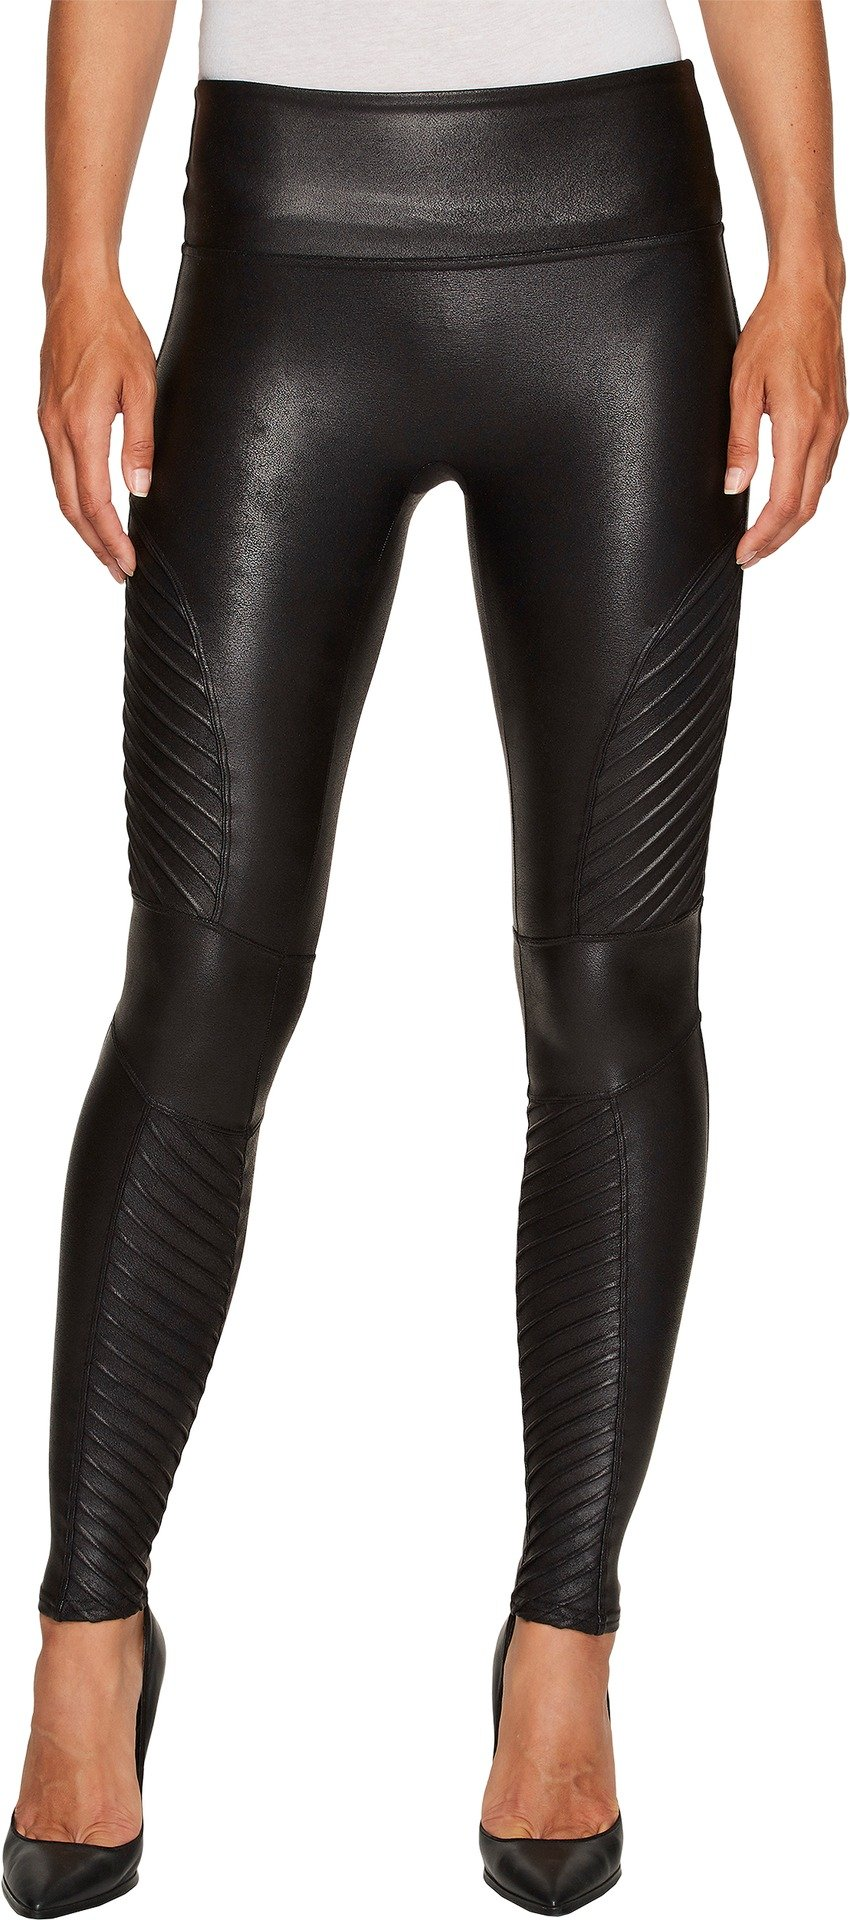 SPANX Women's Faux Leather Moto Leggings, Very Black, Medium